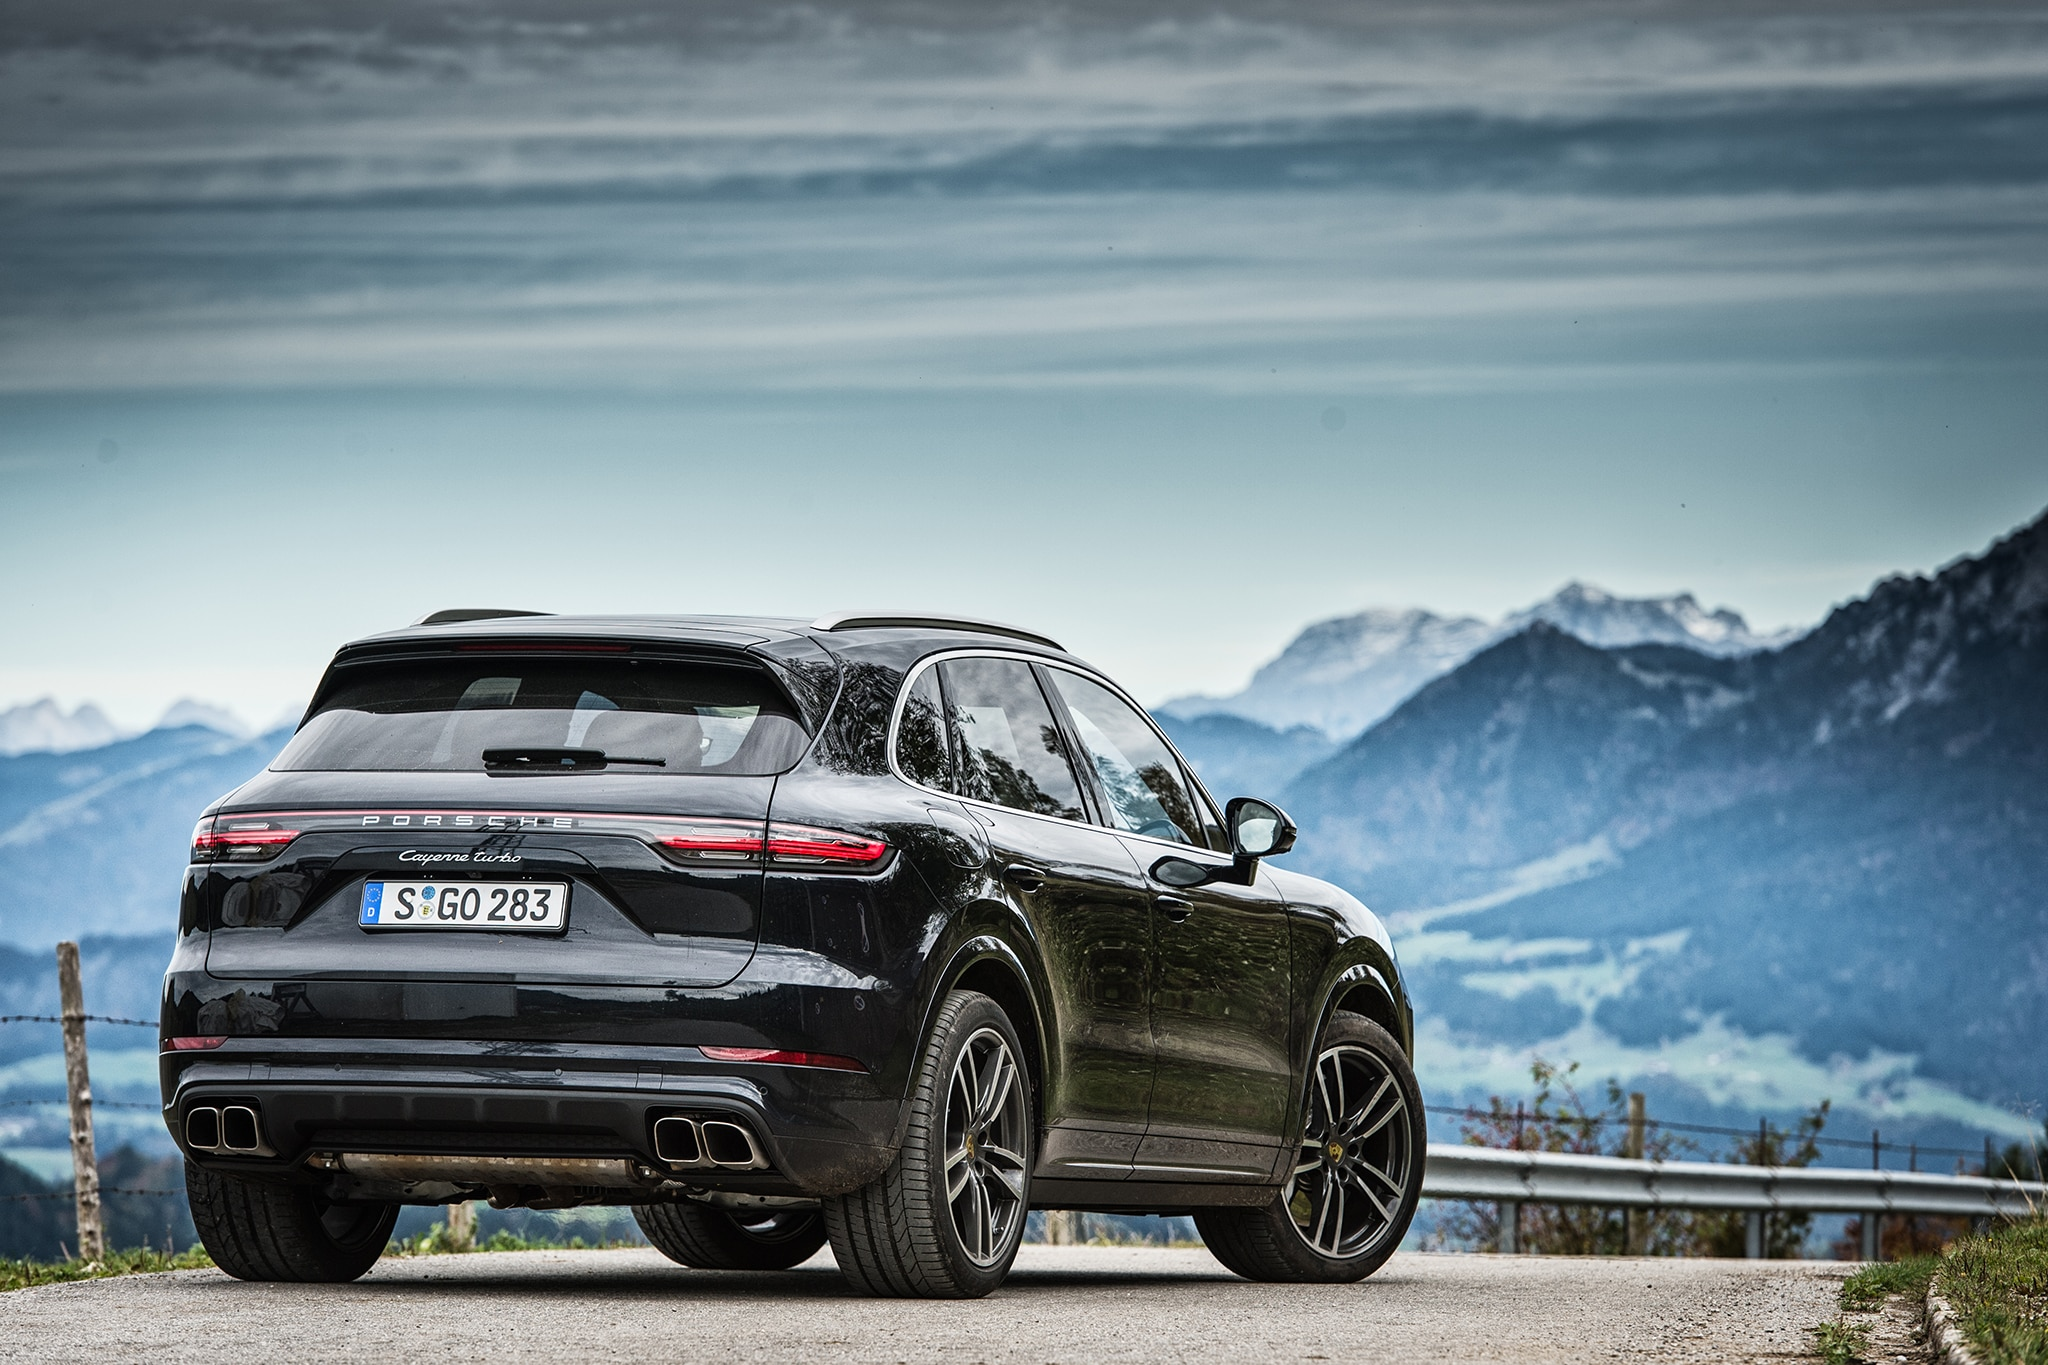 36 The Best 2019 Porsche Cayenne Turbo S Price and Review